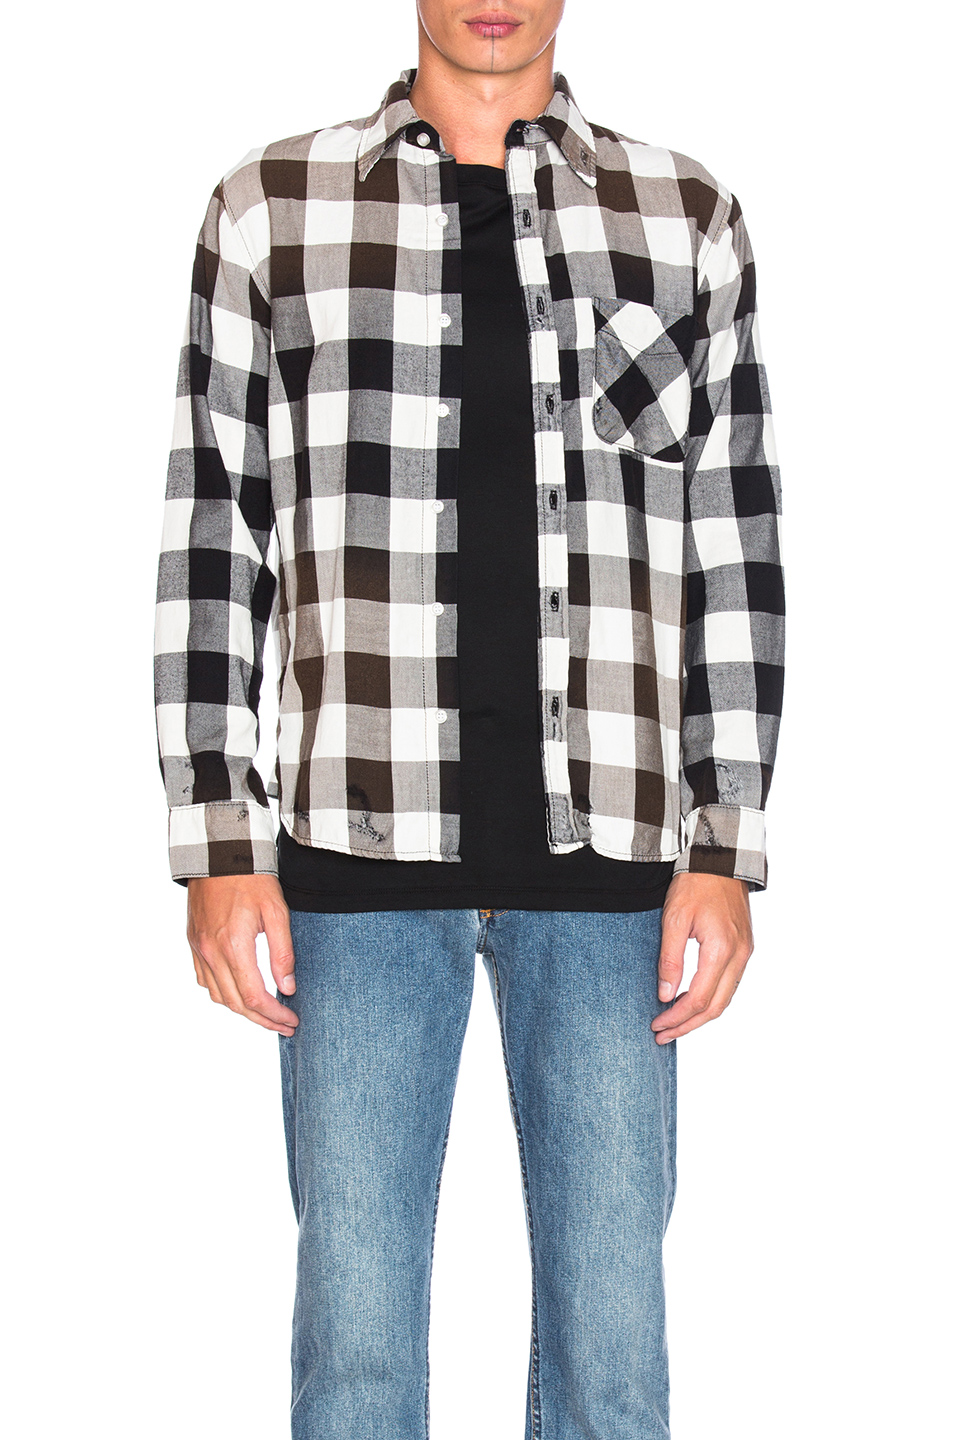 NSF Axel Shirt in Checkered & Plaid